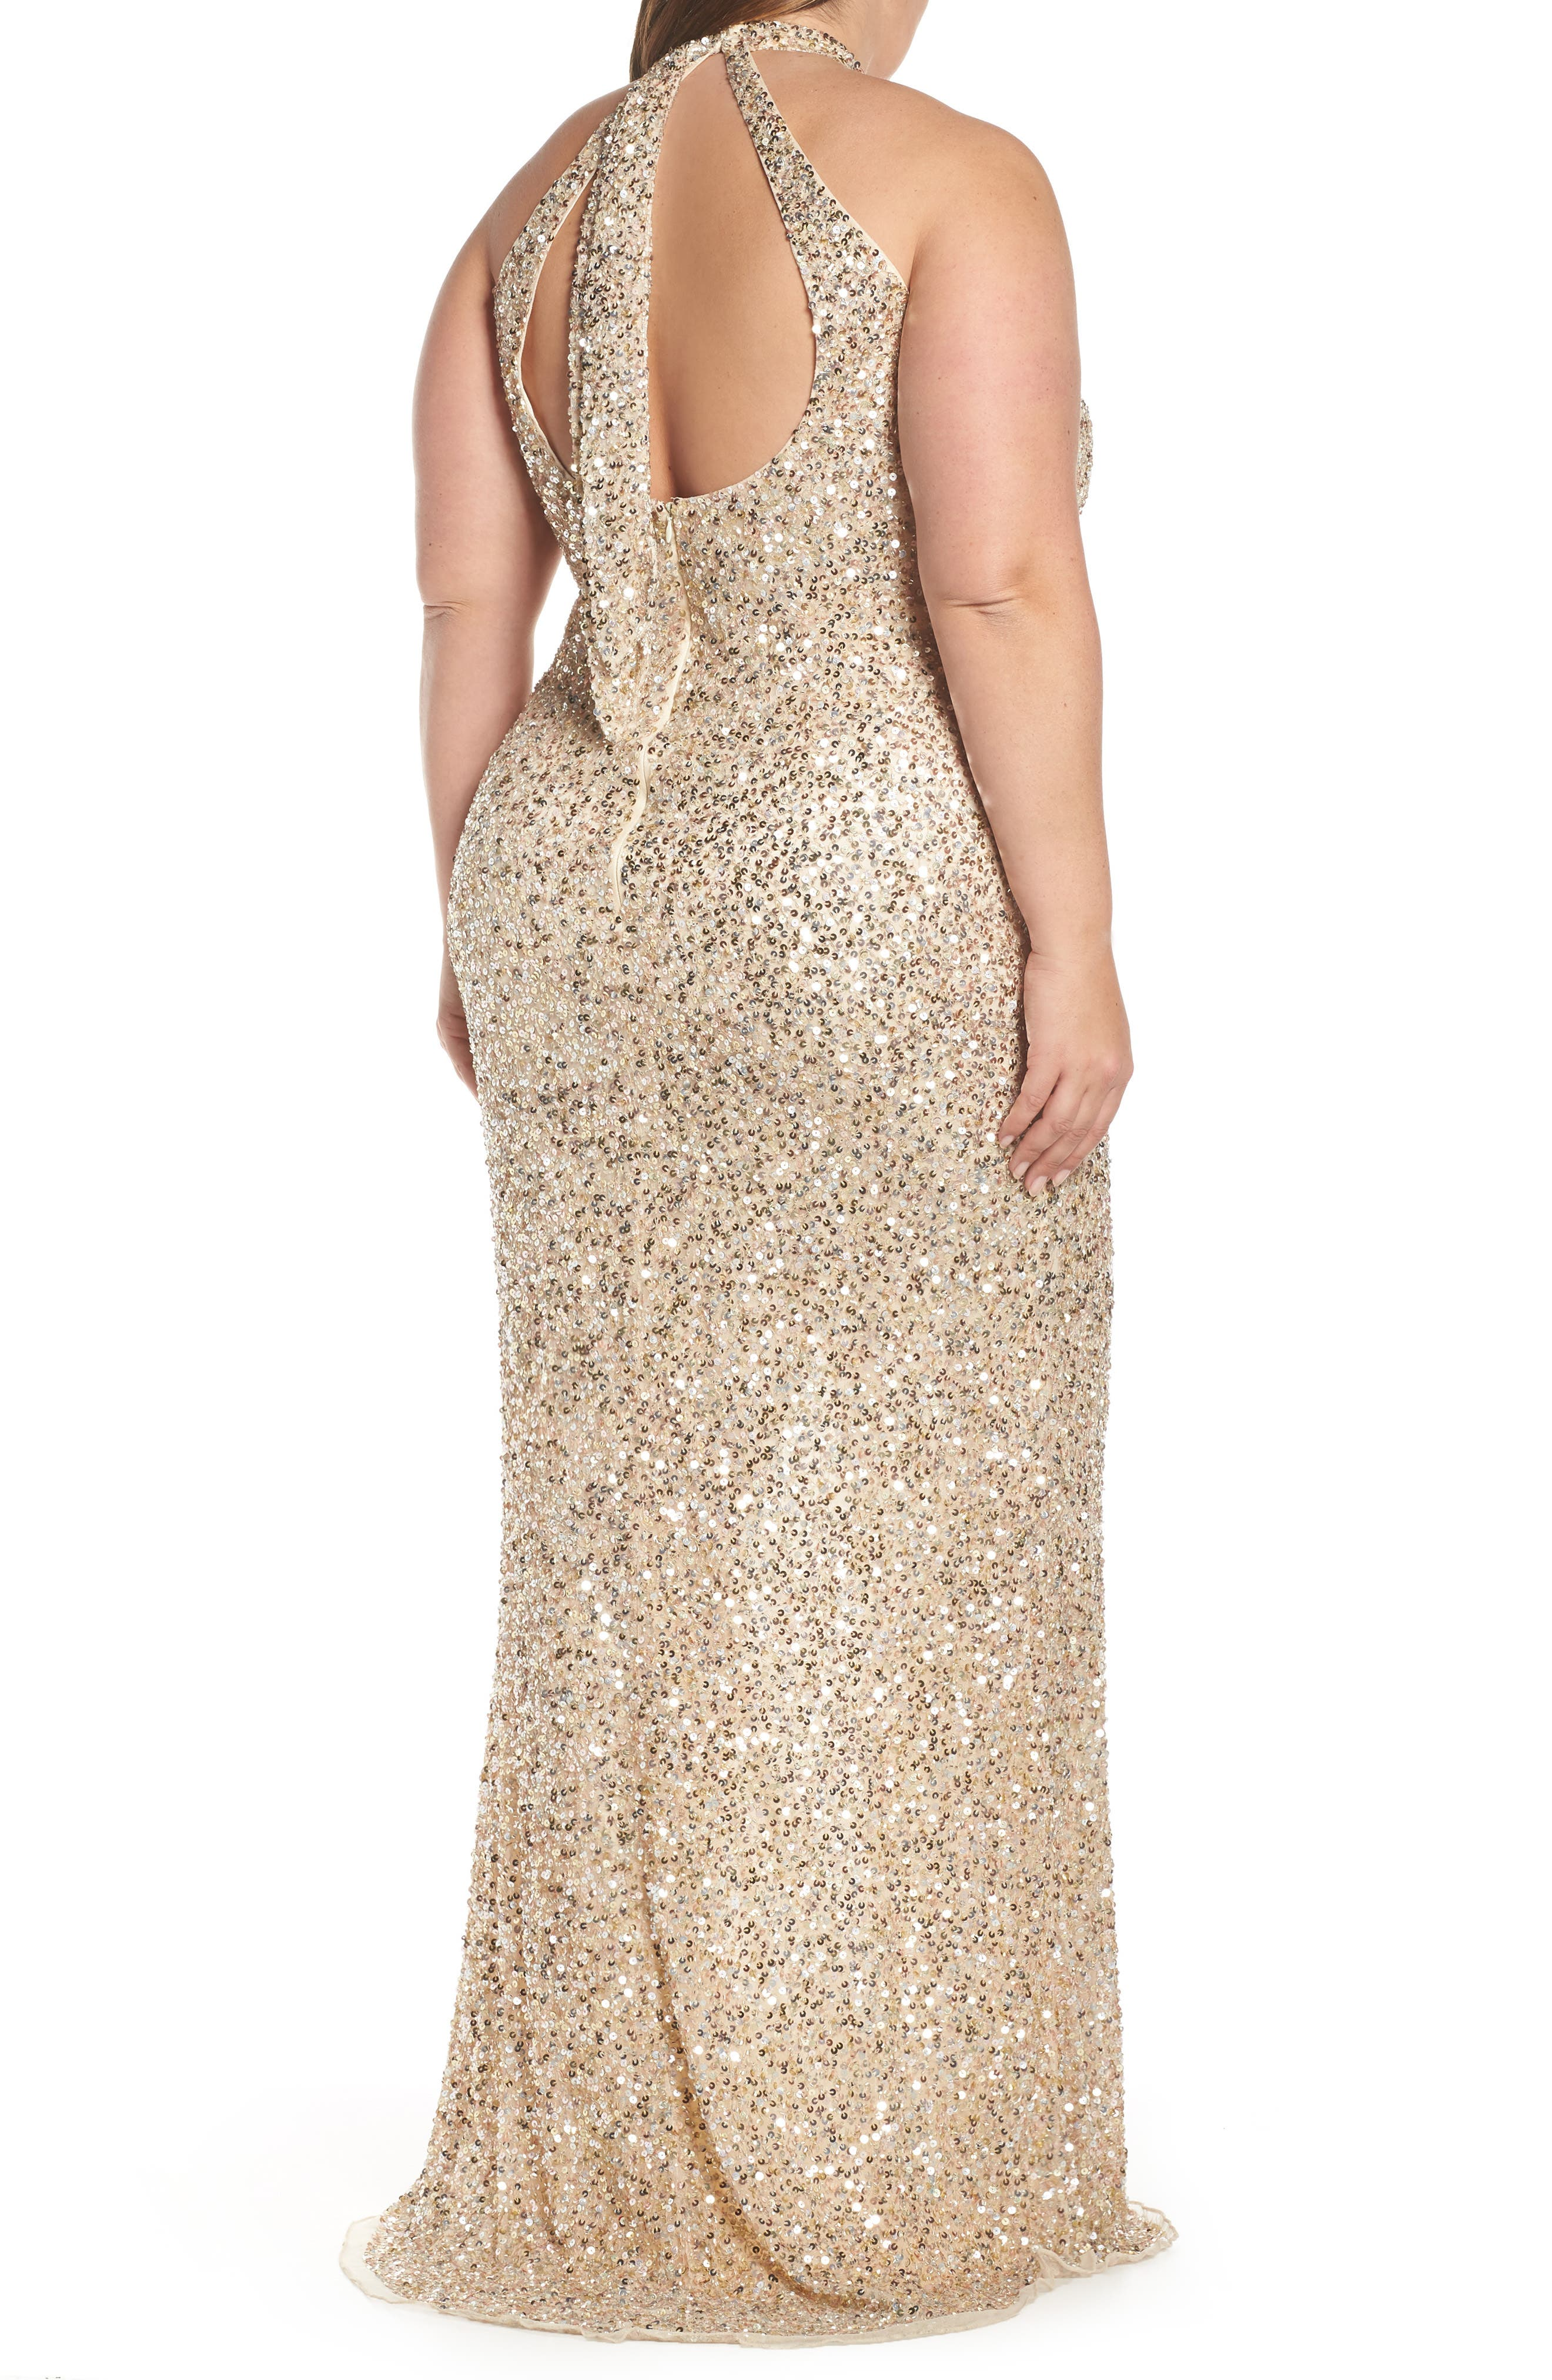 MAC DUGGAL, Sequin Mesh Evening Dress, Alternate thumbnail 2, color, NUDE GOLD